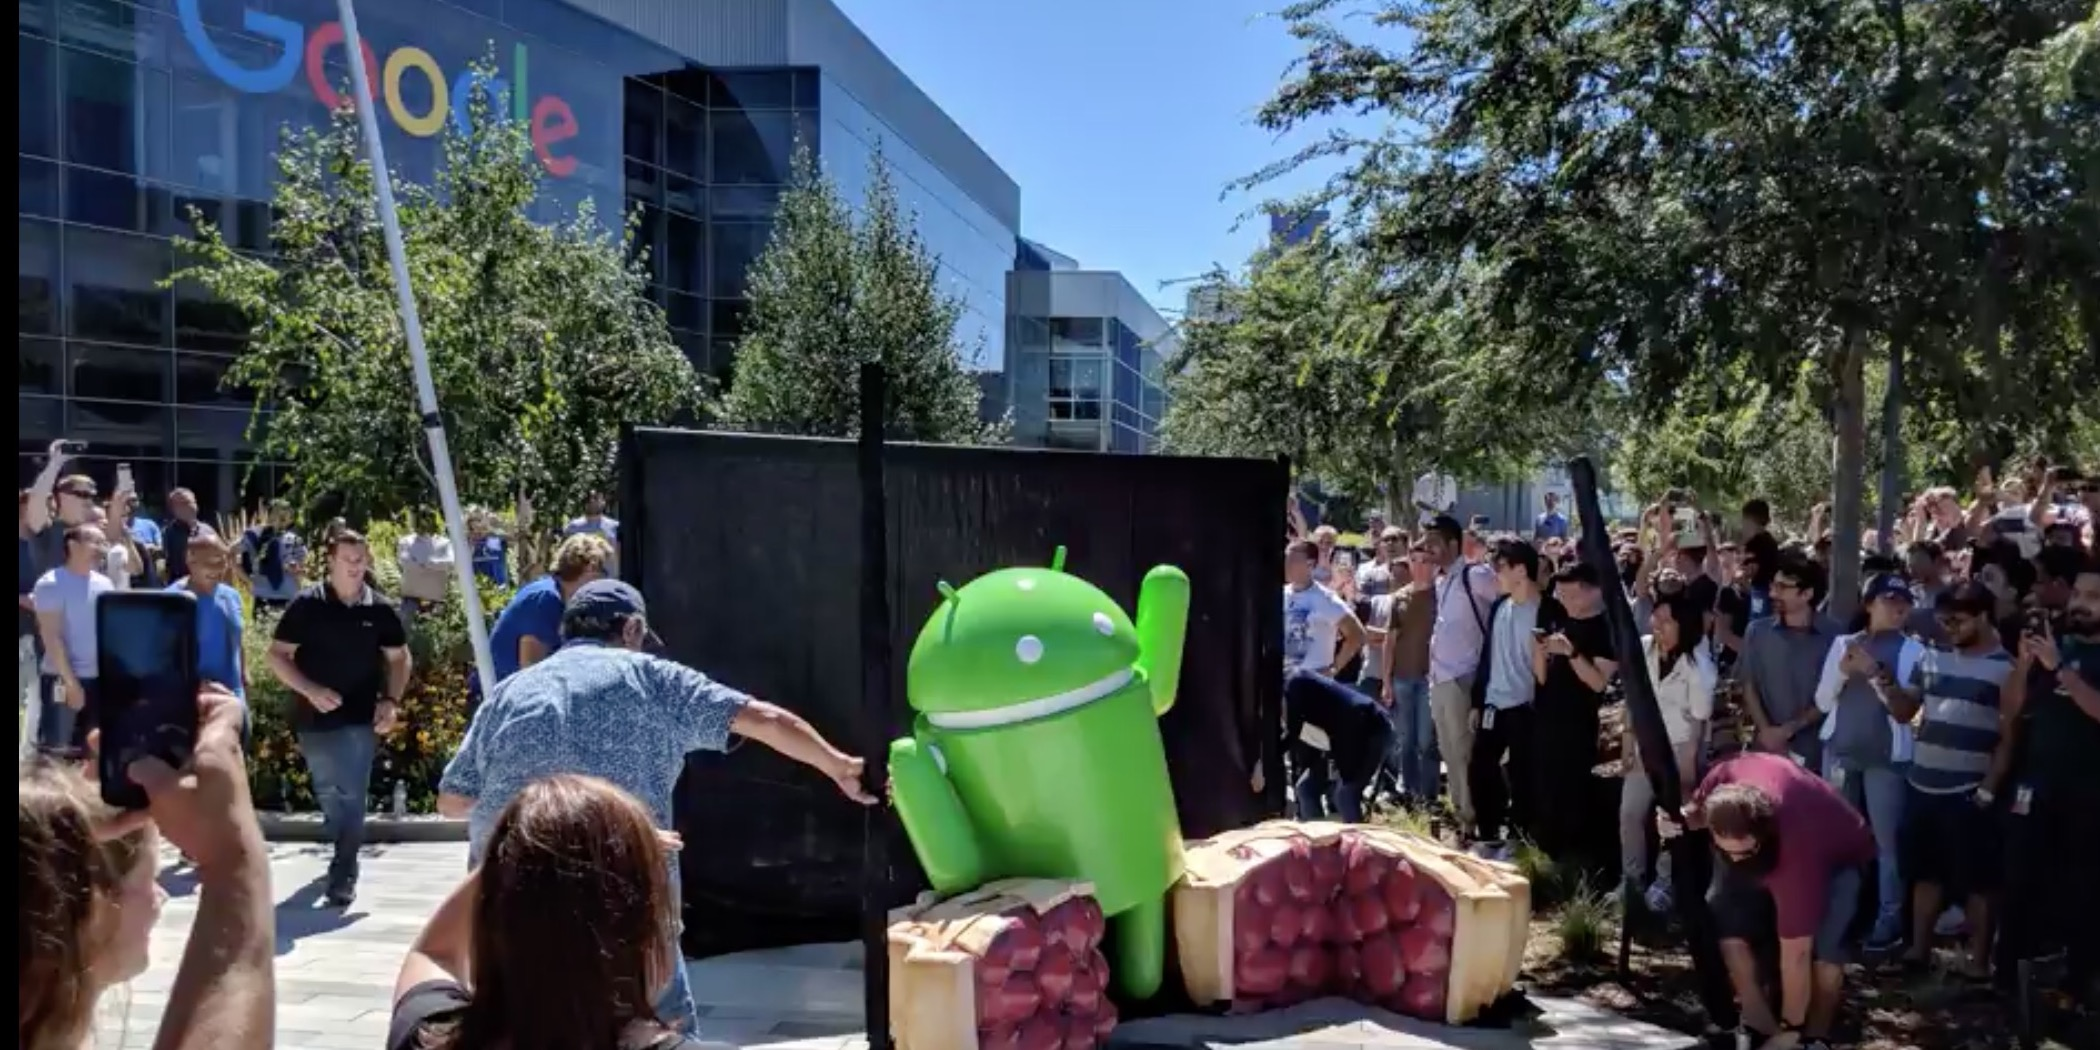 google unveils the new android pie statue at the googleplex